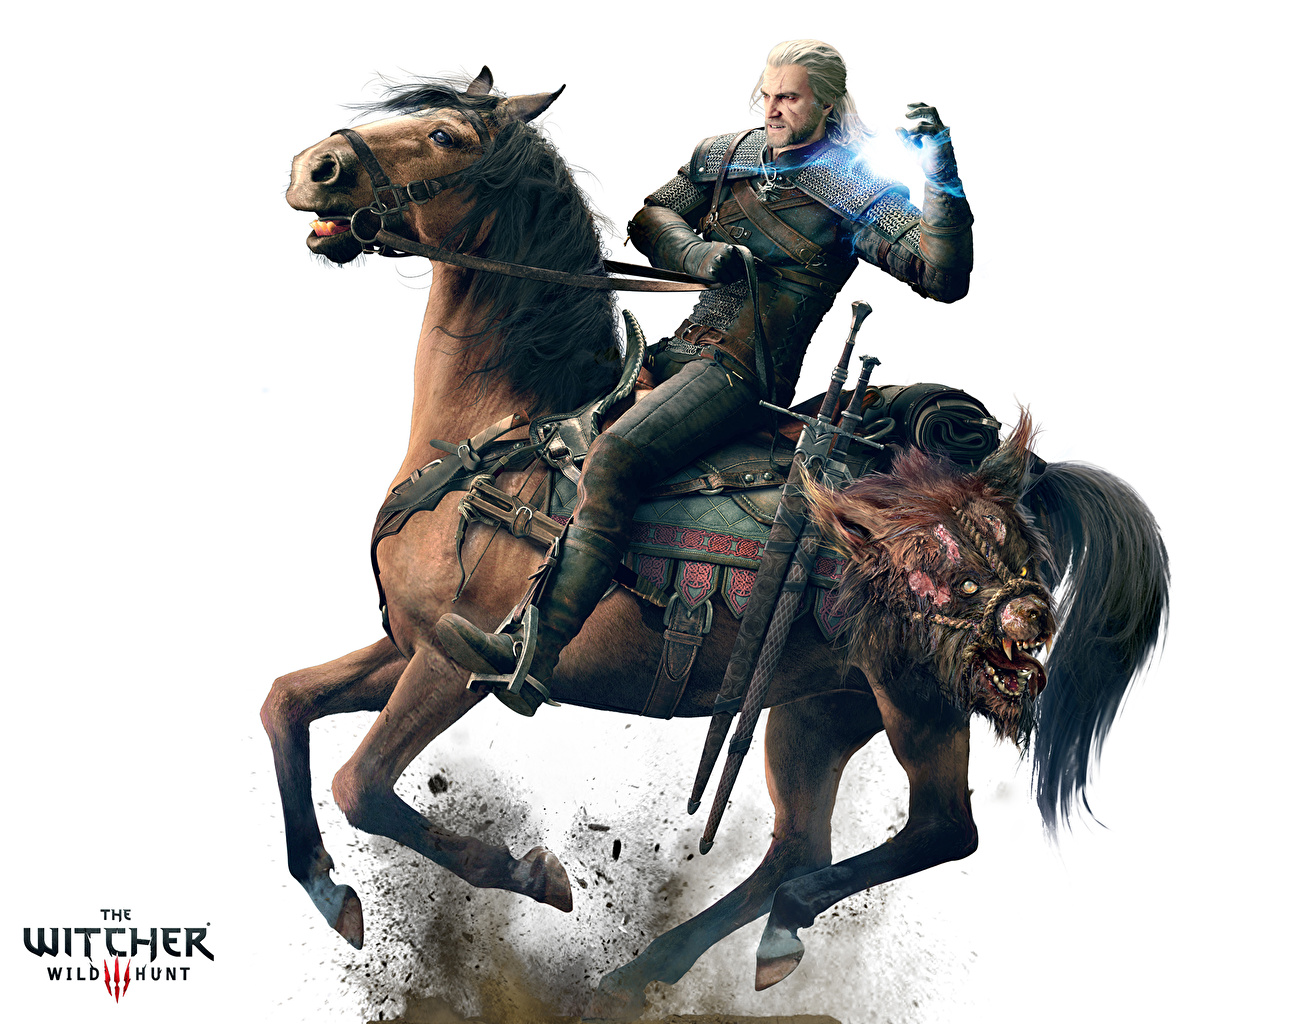 Photo The Witcher 3: Wild Hunt Horses Geralt of Rivia Man warrior Games White background horse Men Warriors vdeo game